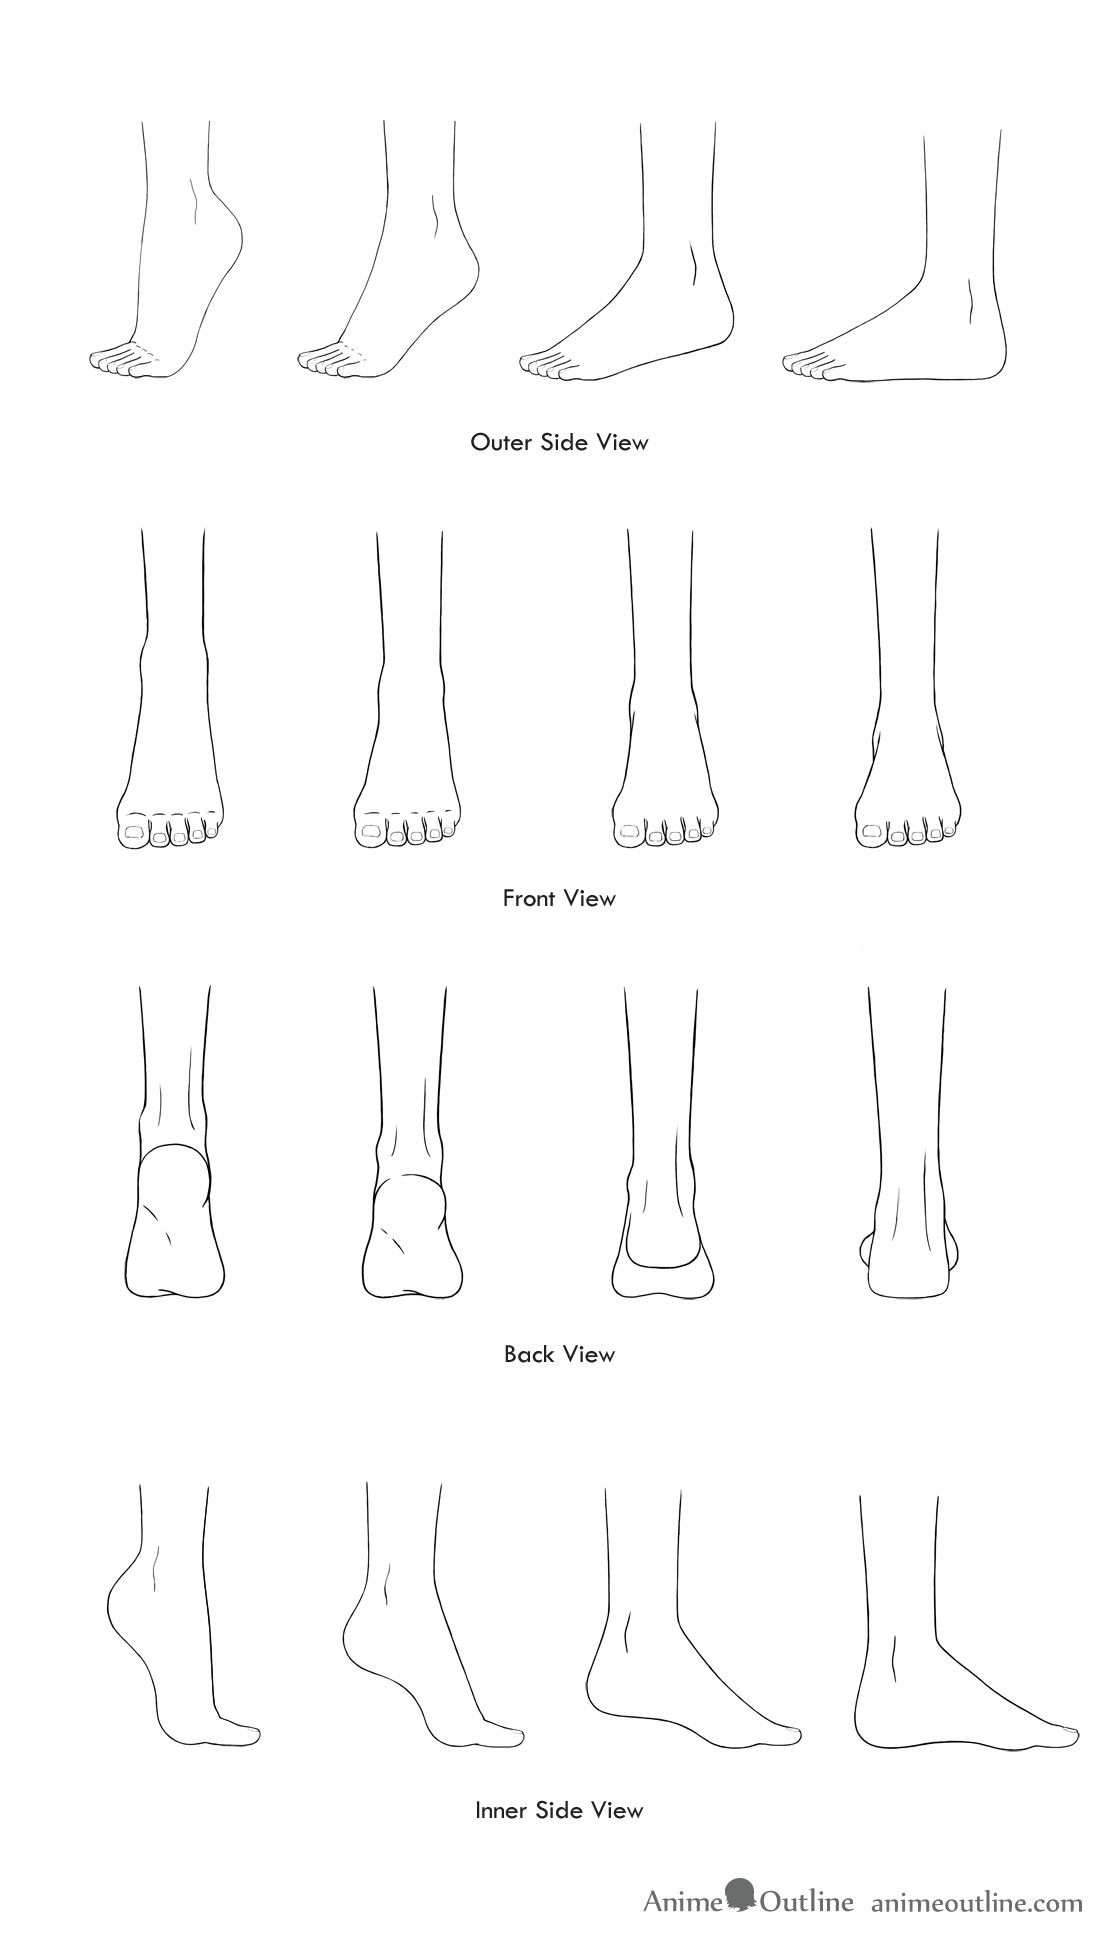 Drawings Of Anime Feet In Different Positions Anime Drawings Tutorials Anime Drawings Sketches Fashion Drawing Sketches